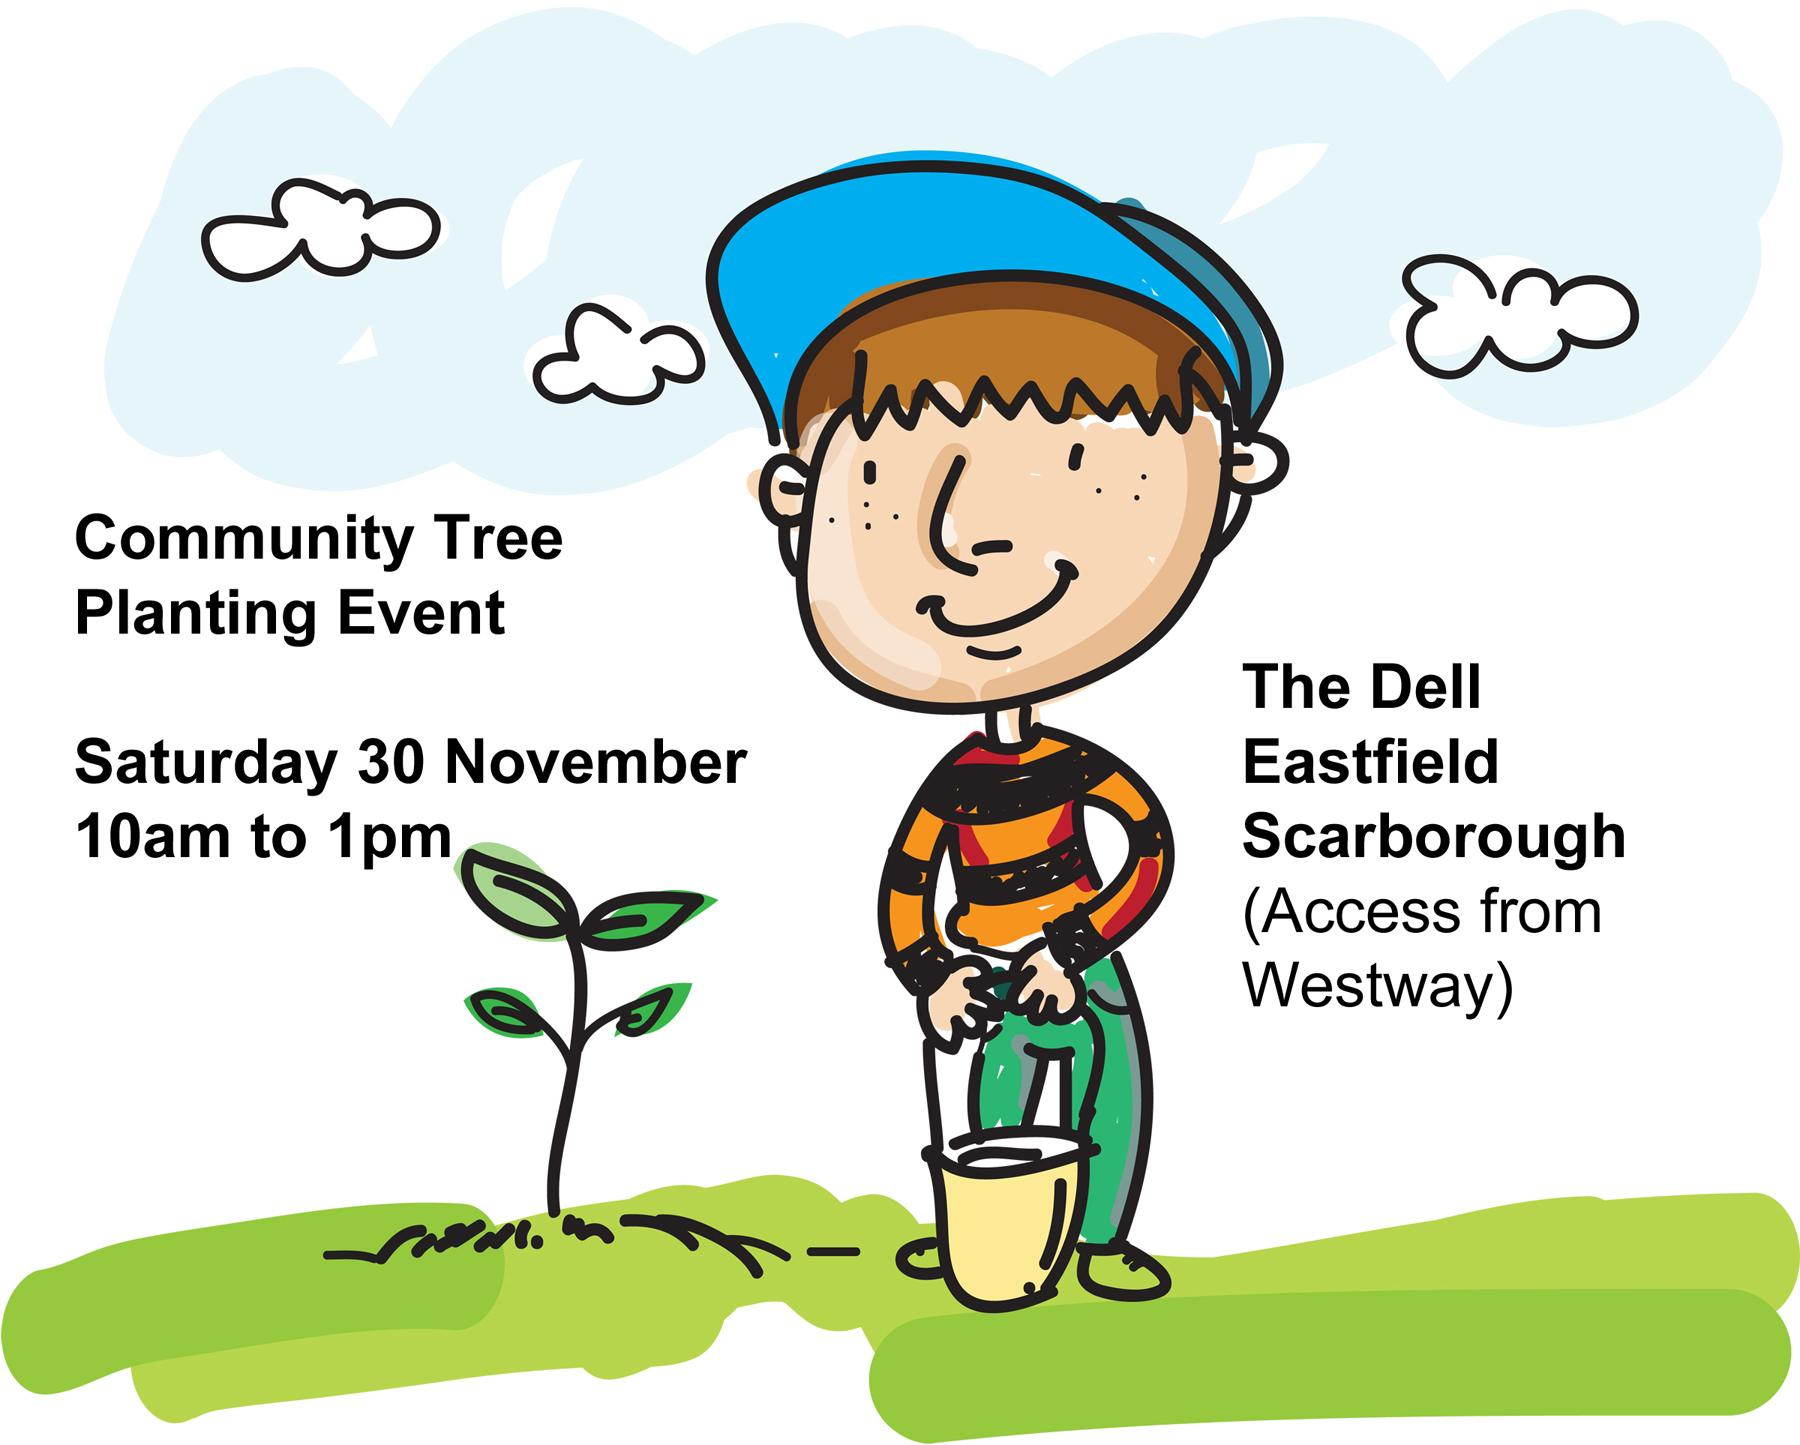 Graphic to promote the community tree planting event on 30 November